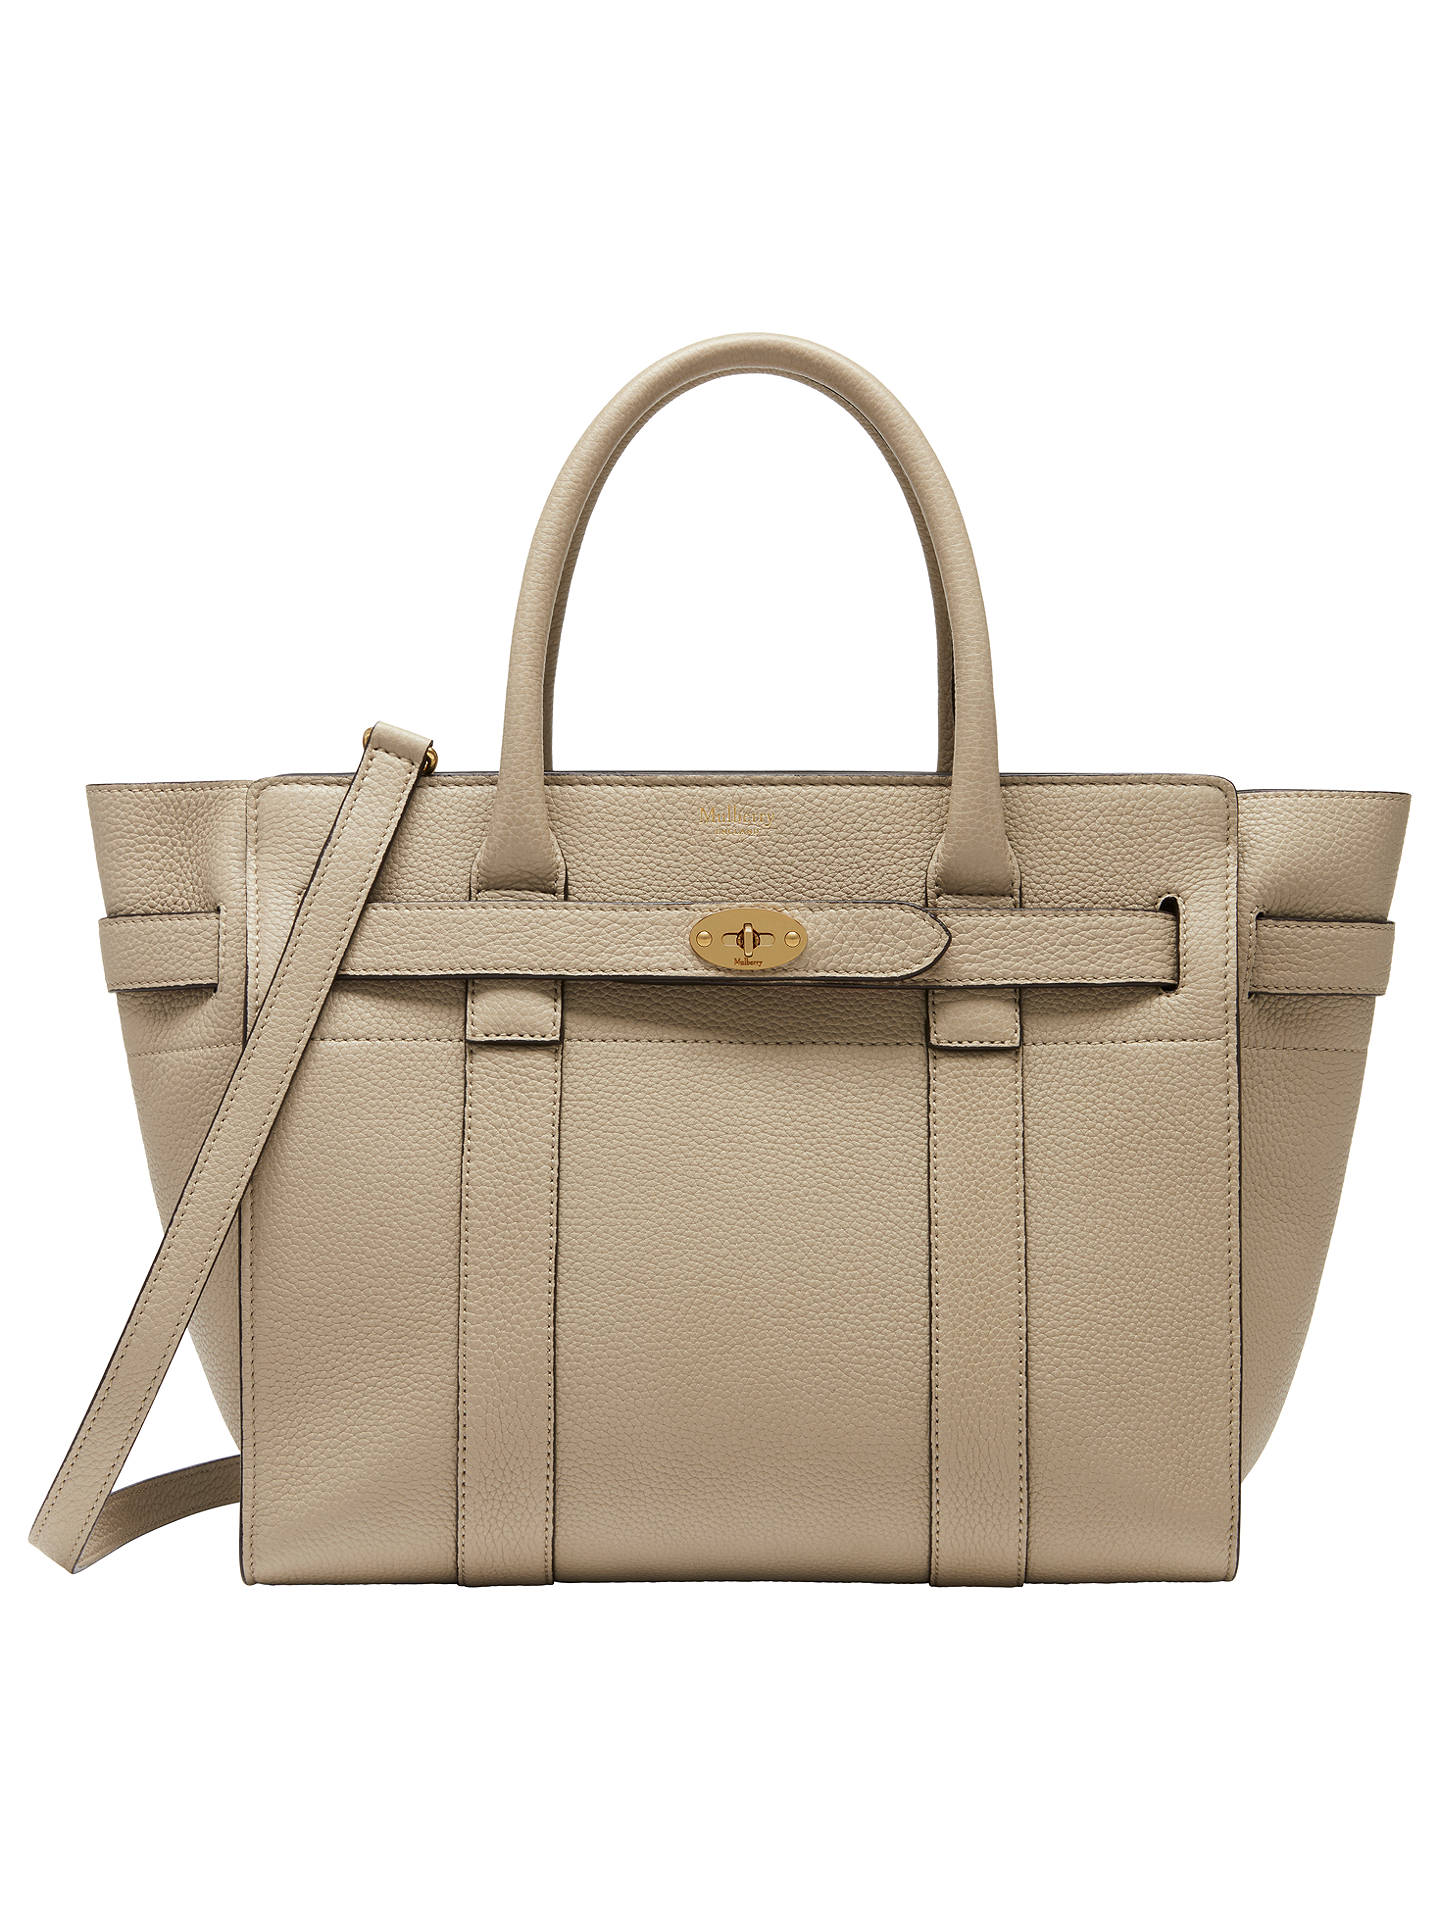 Mulberry Bayswater Small Classic Grain Leather Zipped Bag Dune Online At Johnlewis